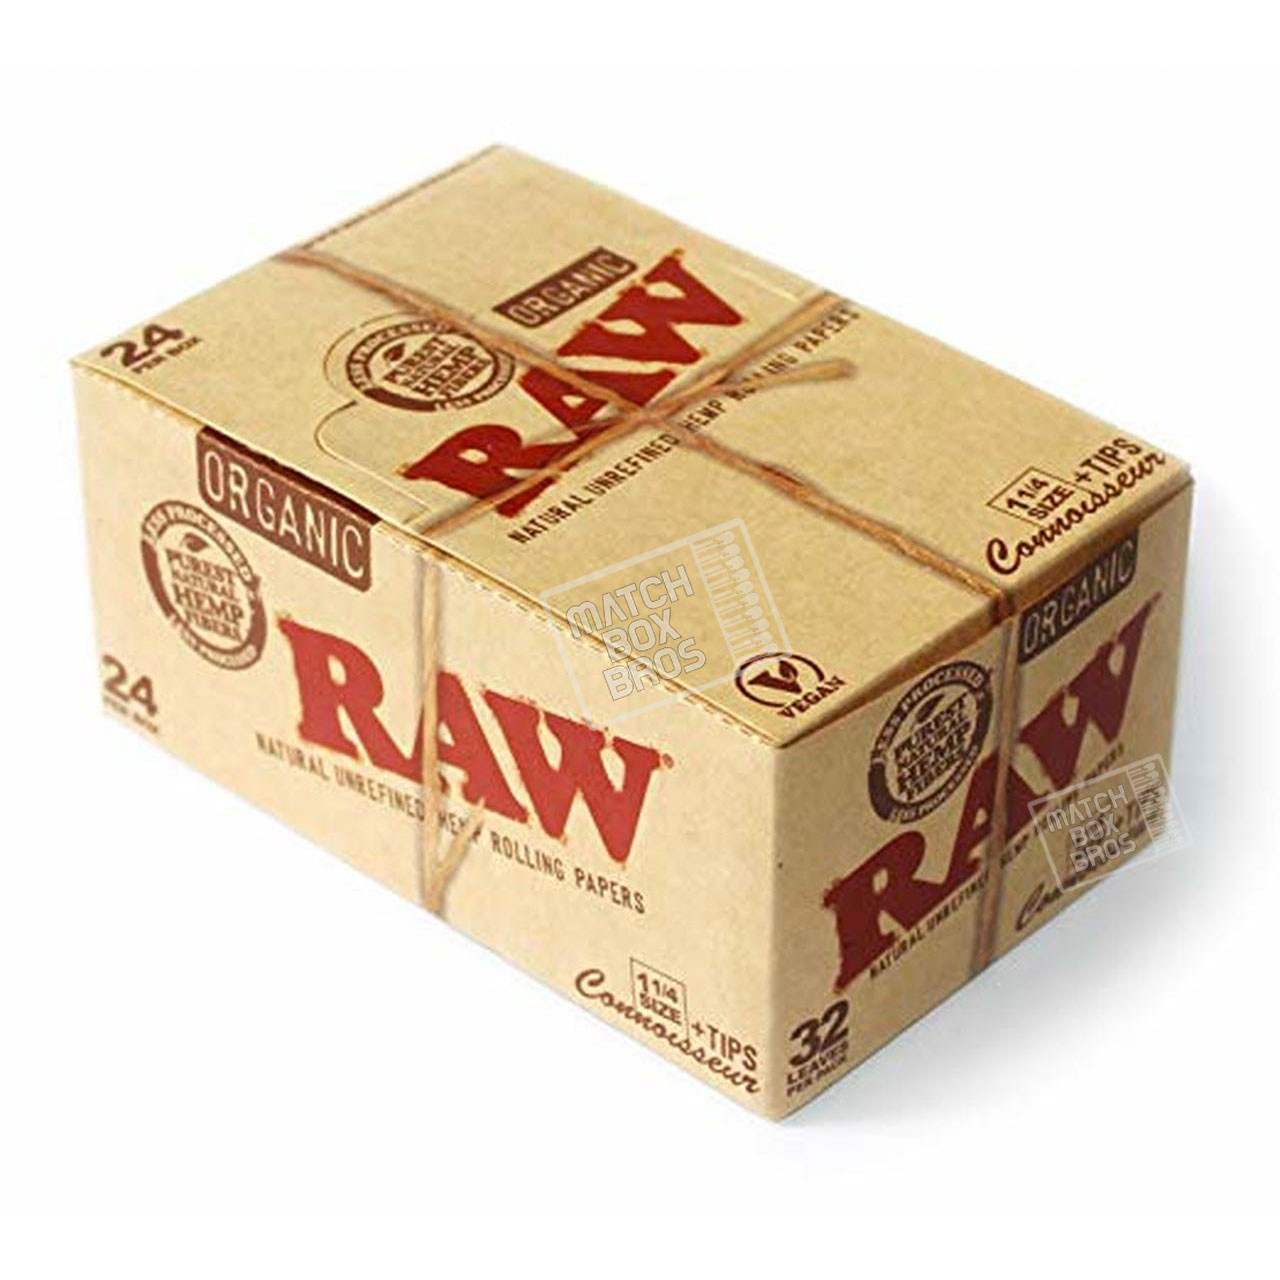 RAW Classic Connoisseur 1¼ Paper + Tips  Box